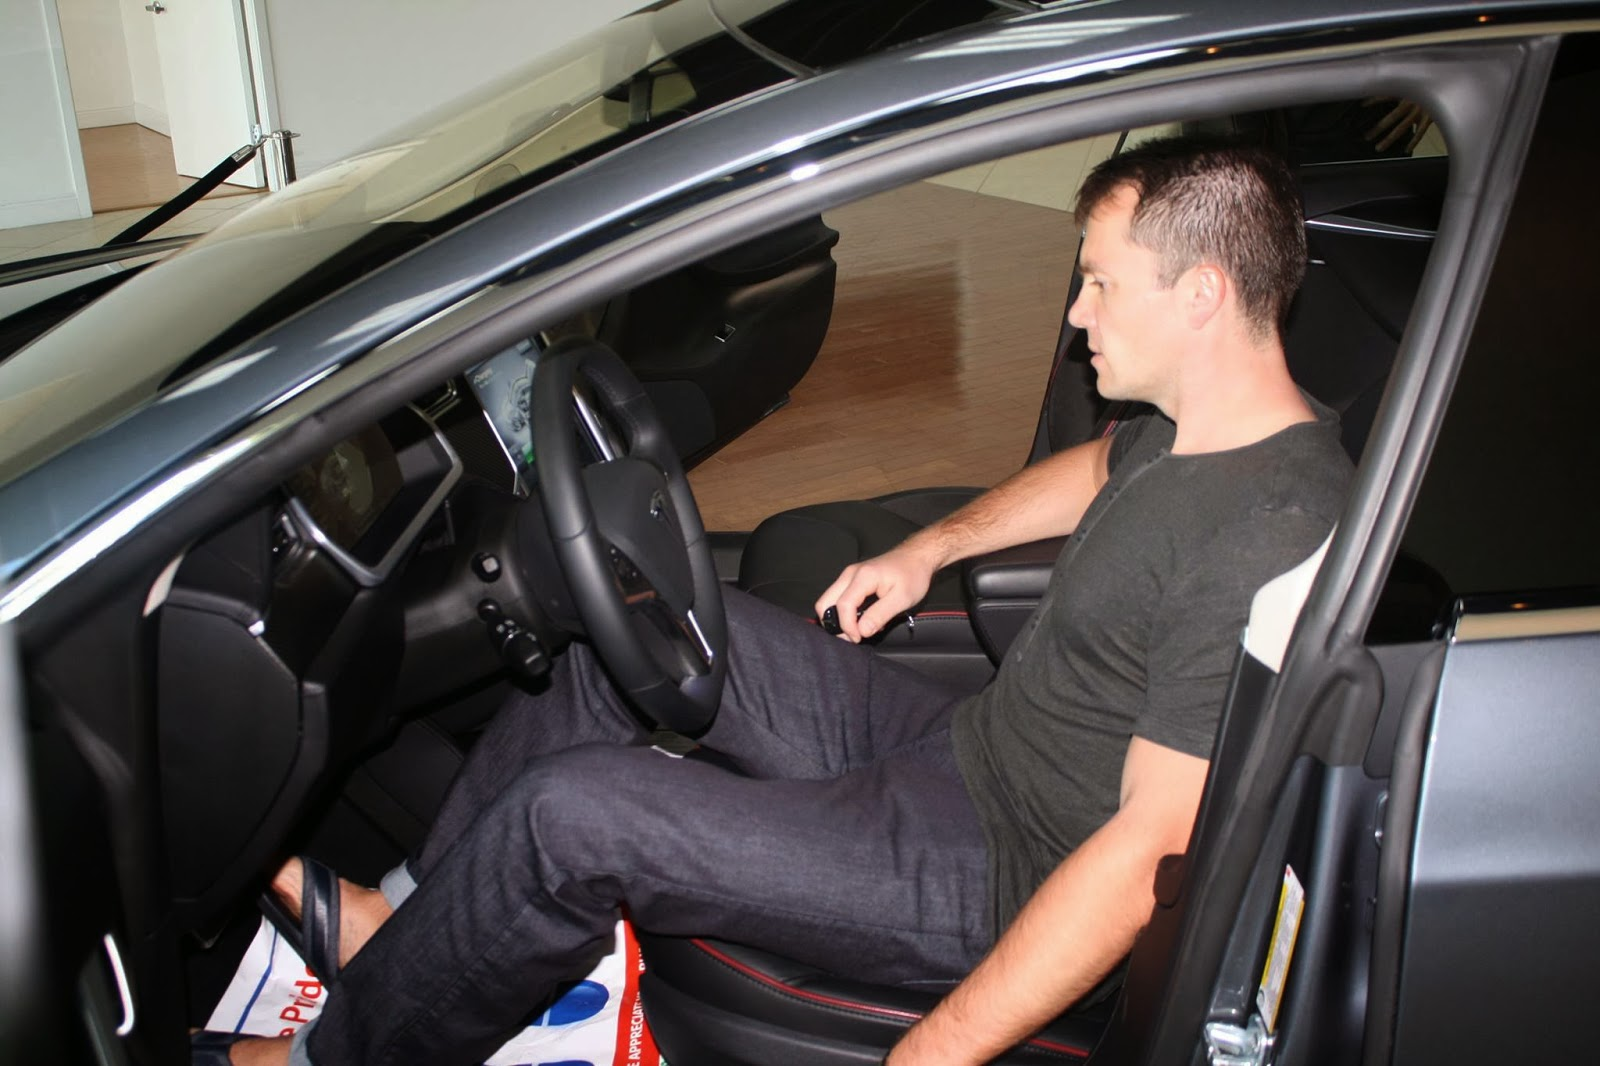 Vick Strizheus in his brand new Tesla Motors S